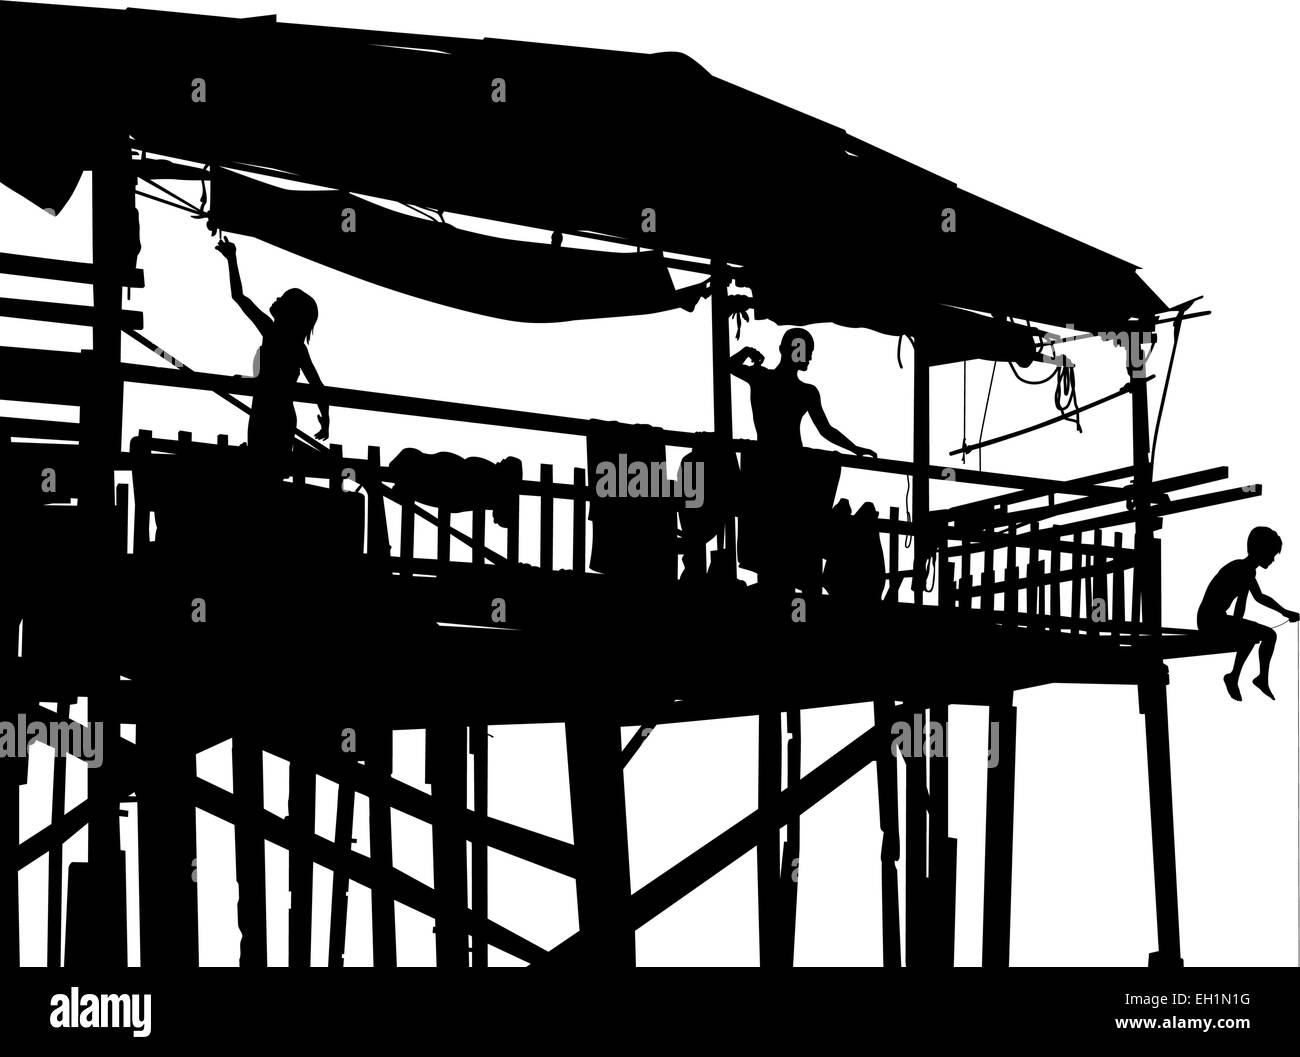 Editable vector silhouette of a family in their shack on stilts with people as separate objects - Stock Image